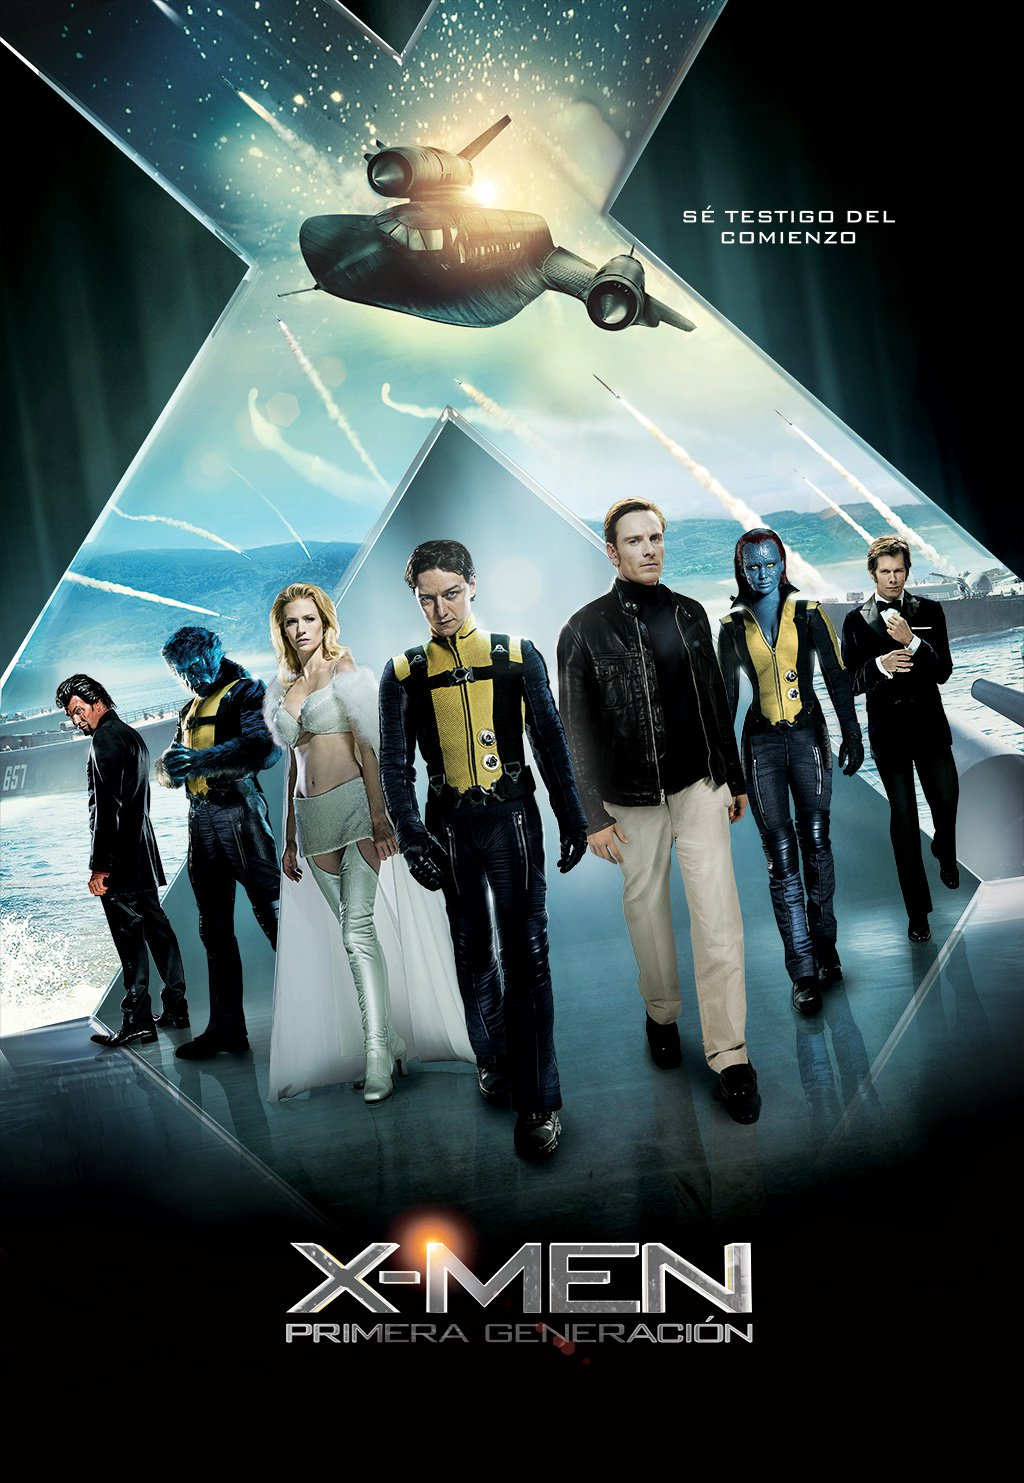 Some More 'X-Men: First Class' Posters and Photo - Nerd ...